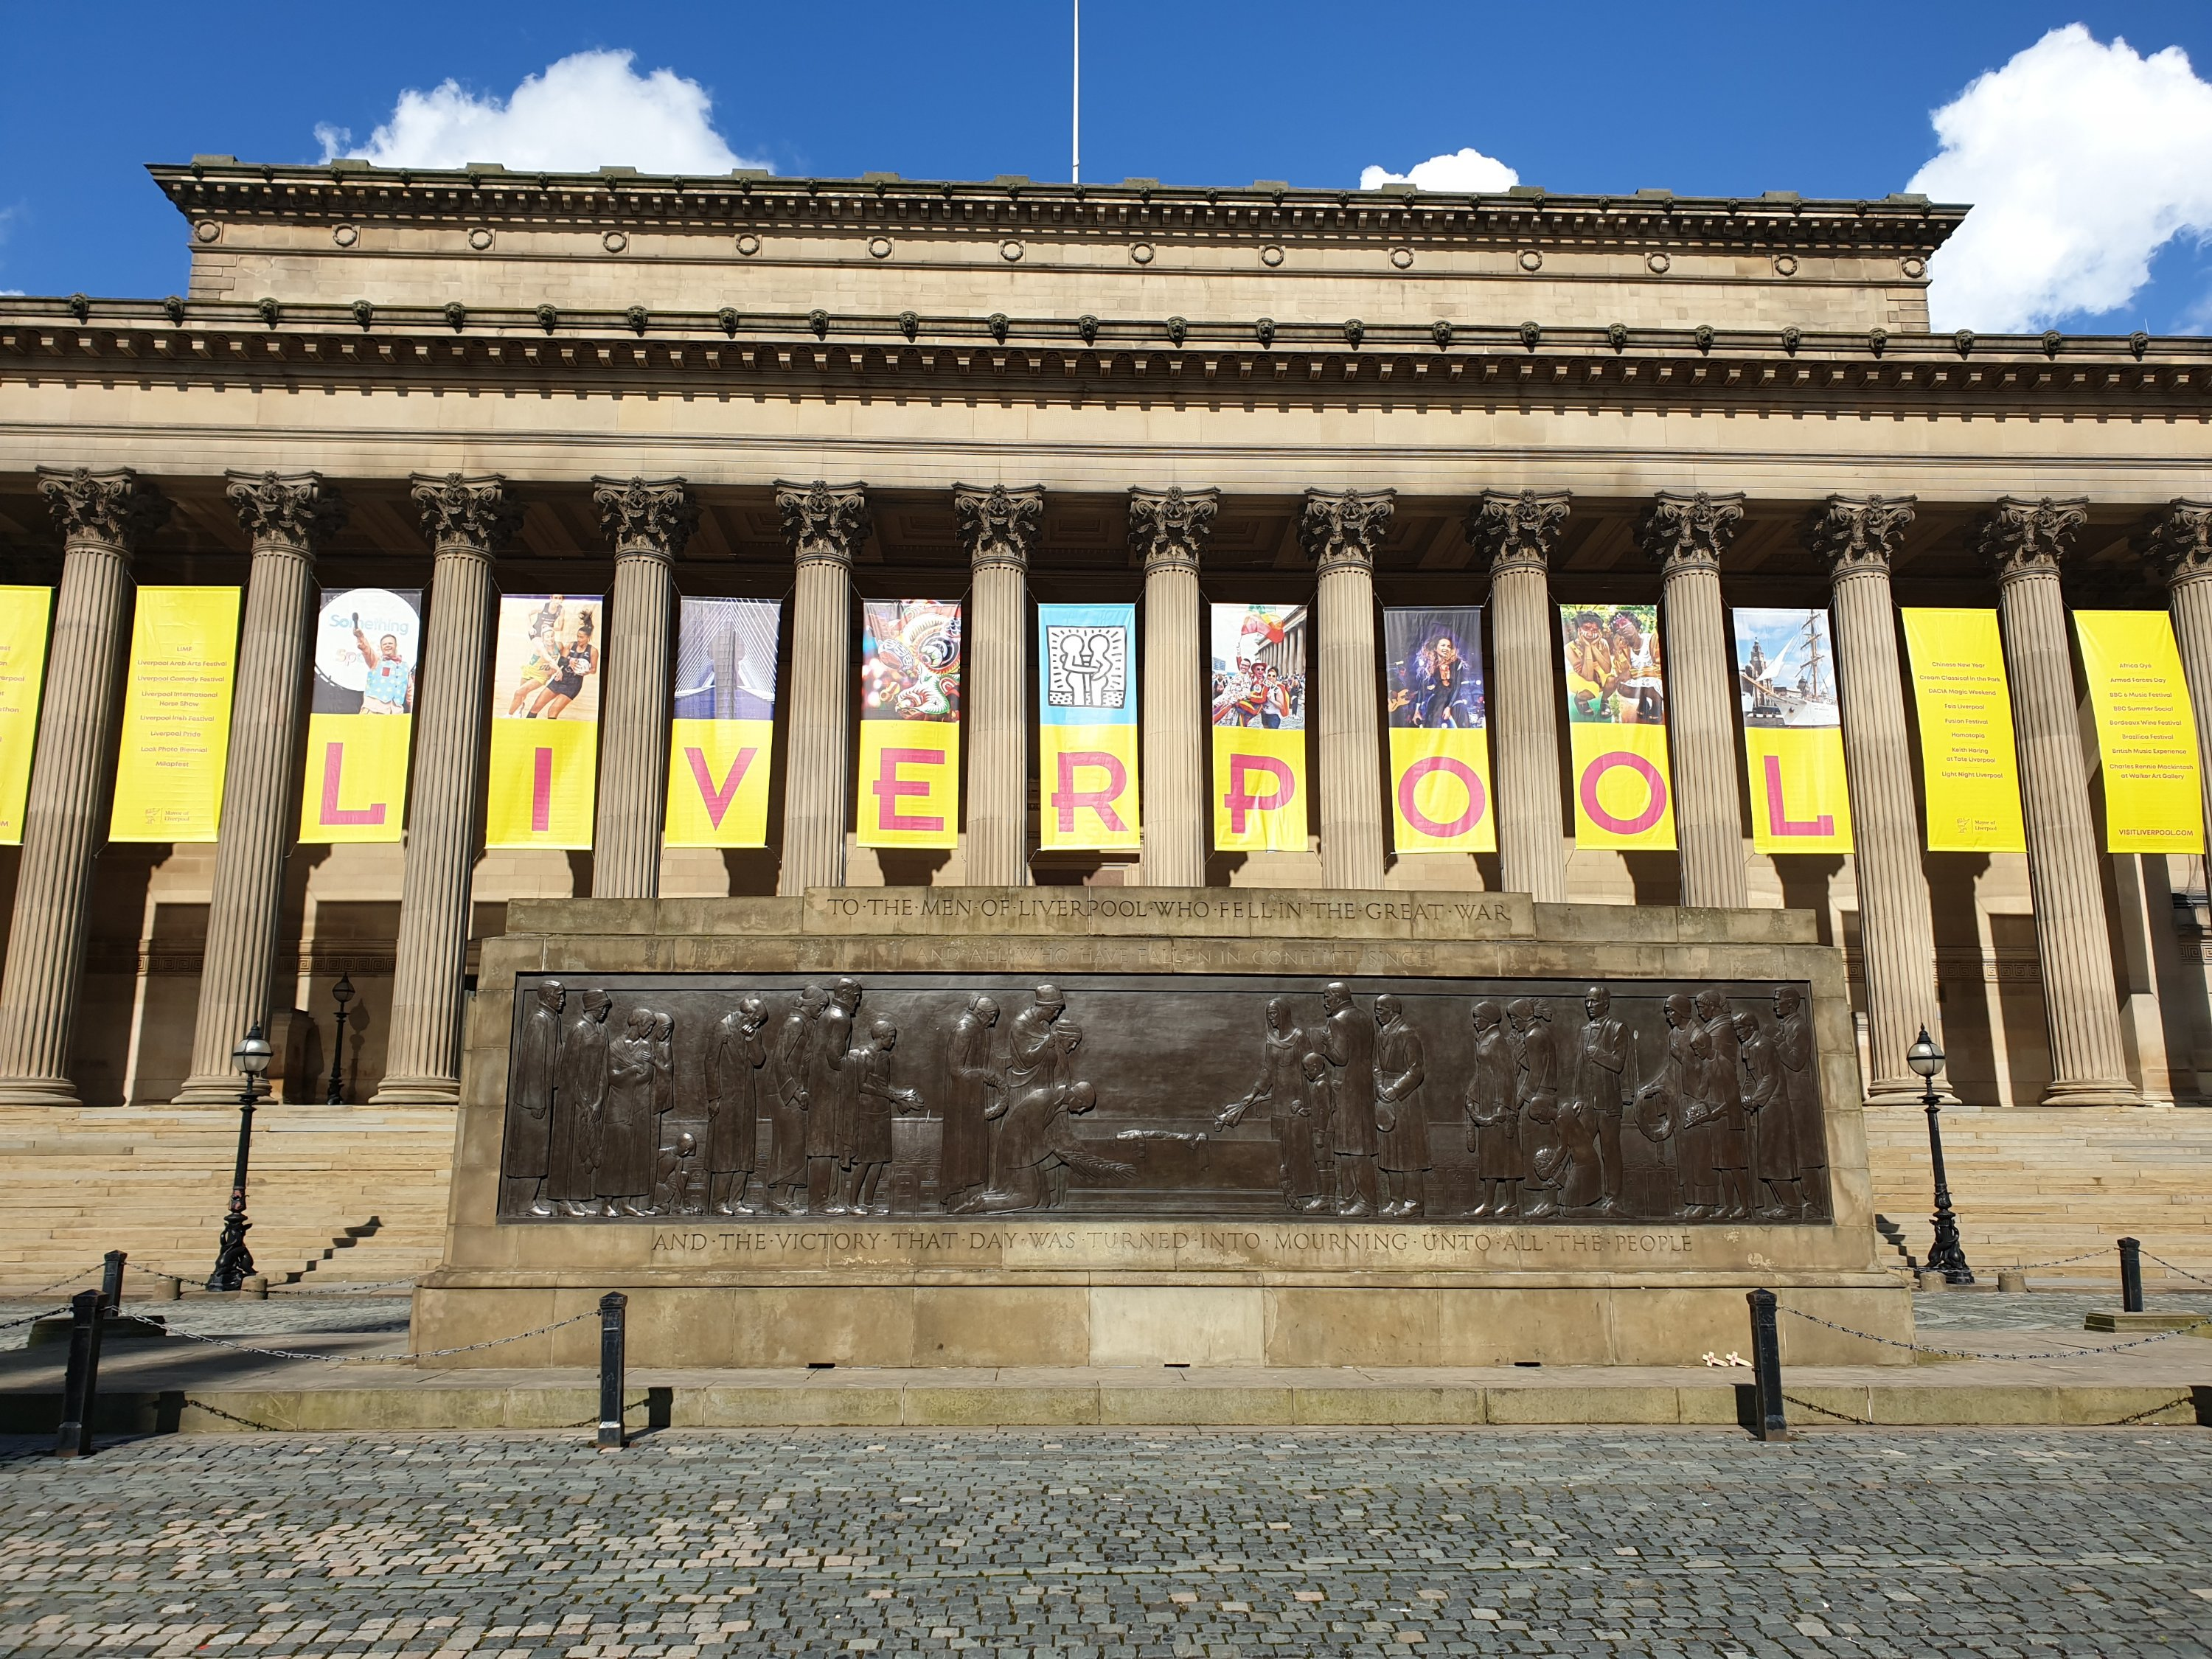 Visit the statue of John Lennon at St George's Hall, Liverpool